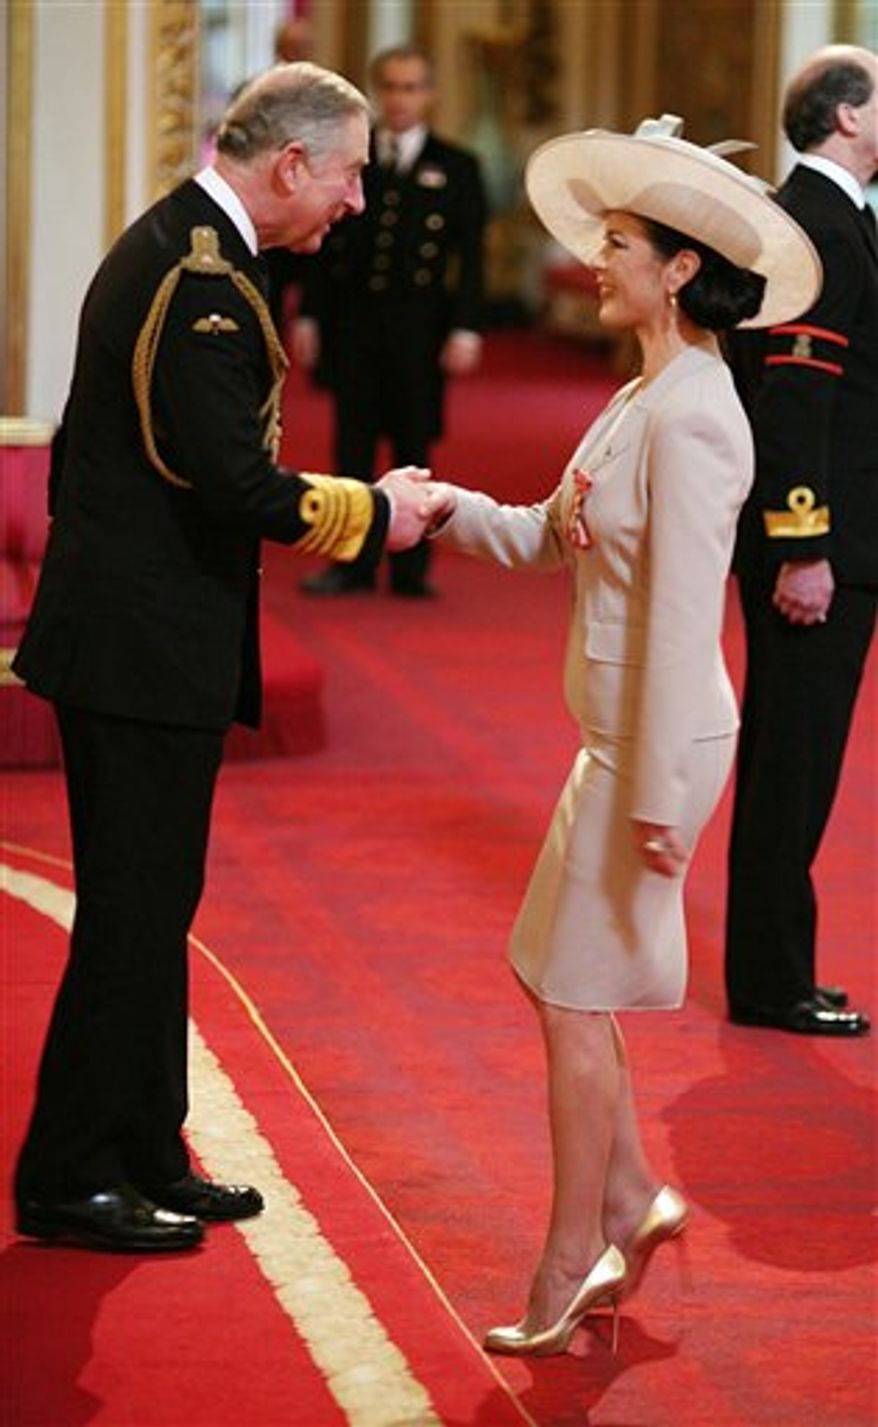 Hollywood actress Catherine Zeta Jones, right,  is invested as a Commander of the British Empire (CBE) by Prince Charles at Buckingham Palace in London, Thursday Feb. 24, 2011.  The Oscar-winning Welsh-born actress receives the royal honour for her services to the film industry and to charity. (AP Photo / Lewis Whyld, PA) UNITED KINGDOM OUT - NO SALES - NO ARCHIVES